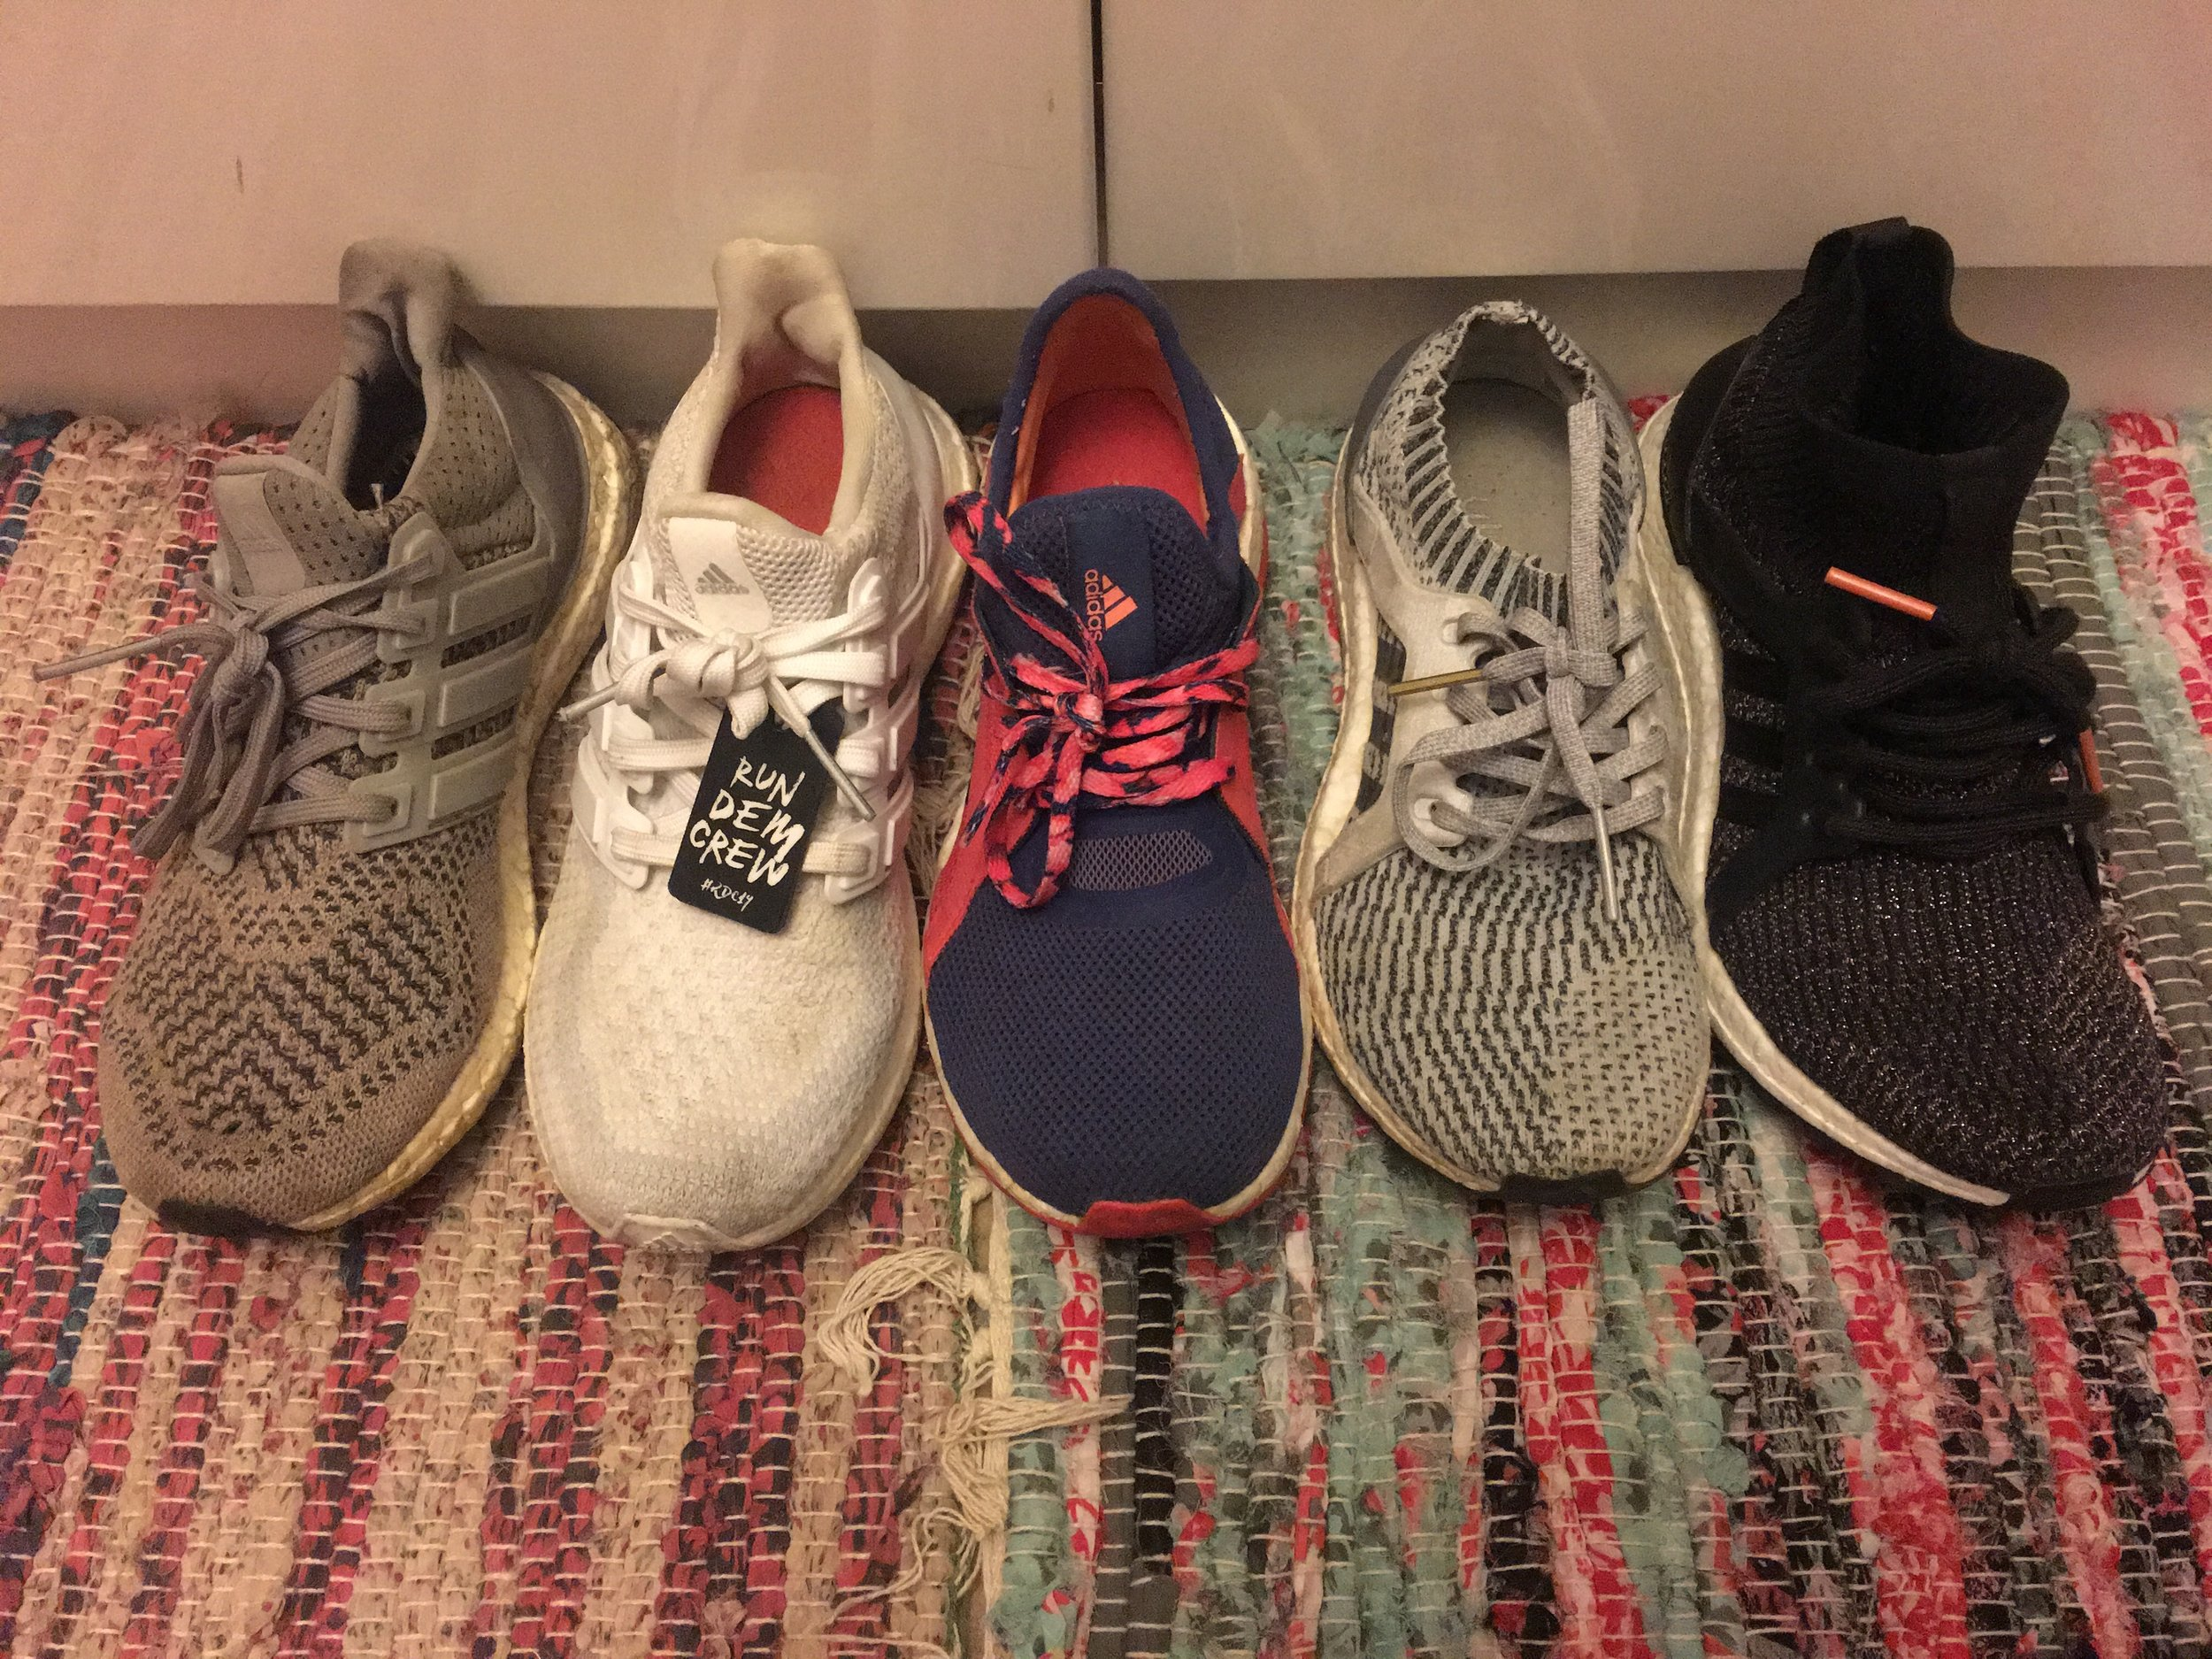 My UltraBOOST collection (left to right): UltraBOOST 1.0 Grey, UltraBOOST 2.0 Triple White, Pure BOOST X, UltraBOOST Uncaged, UltraBOOST X All-Terrain